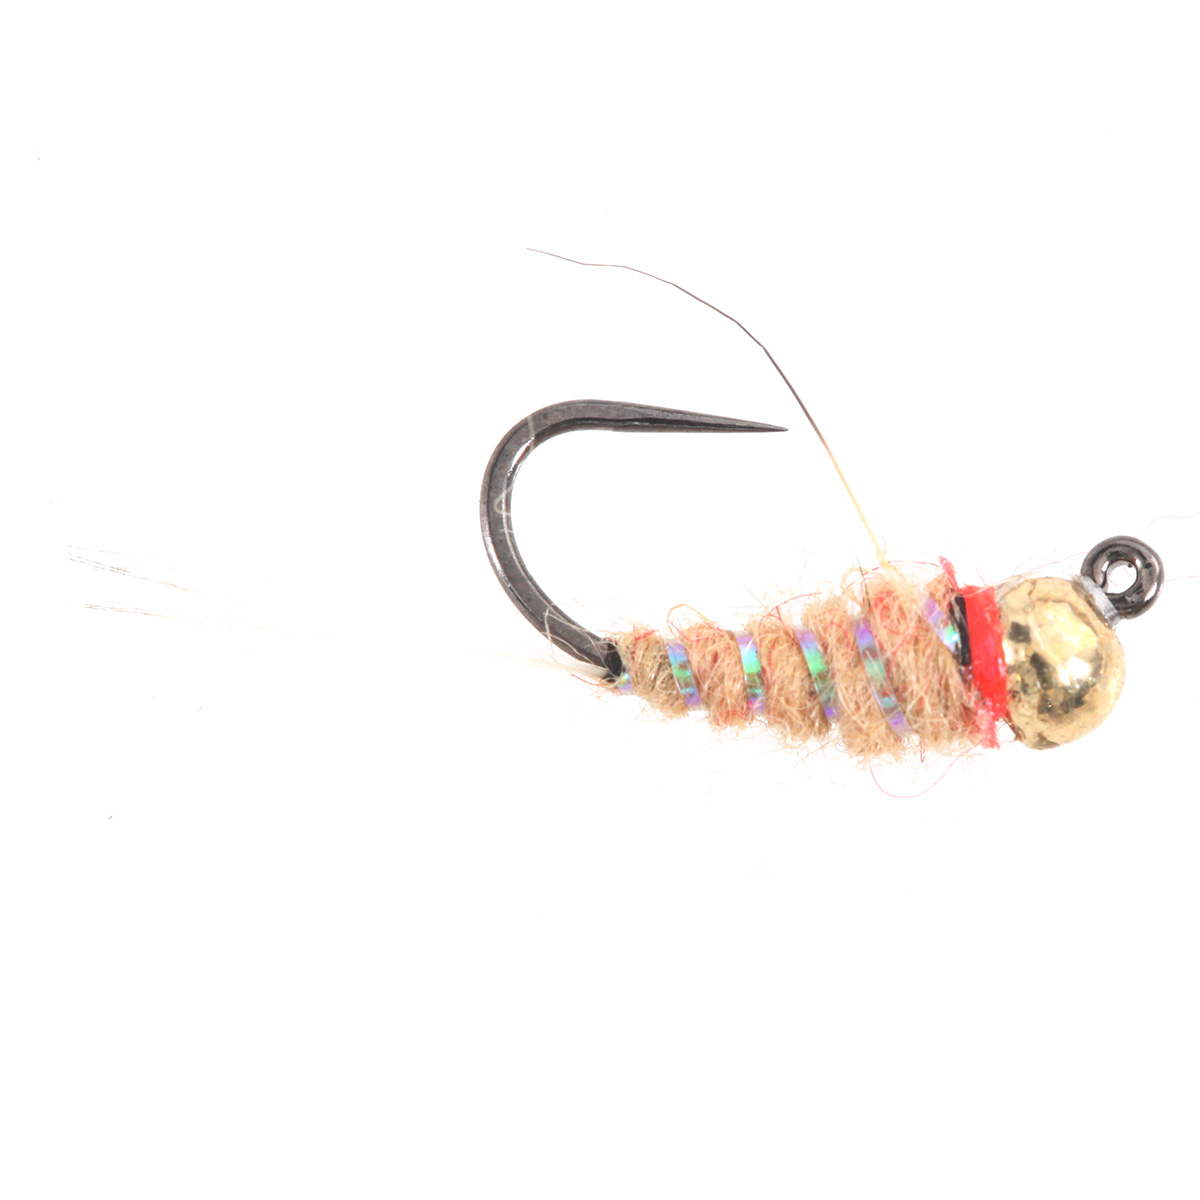 Tungsten BH Orange Tan Jig